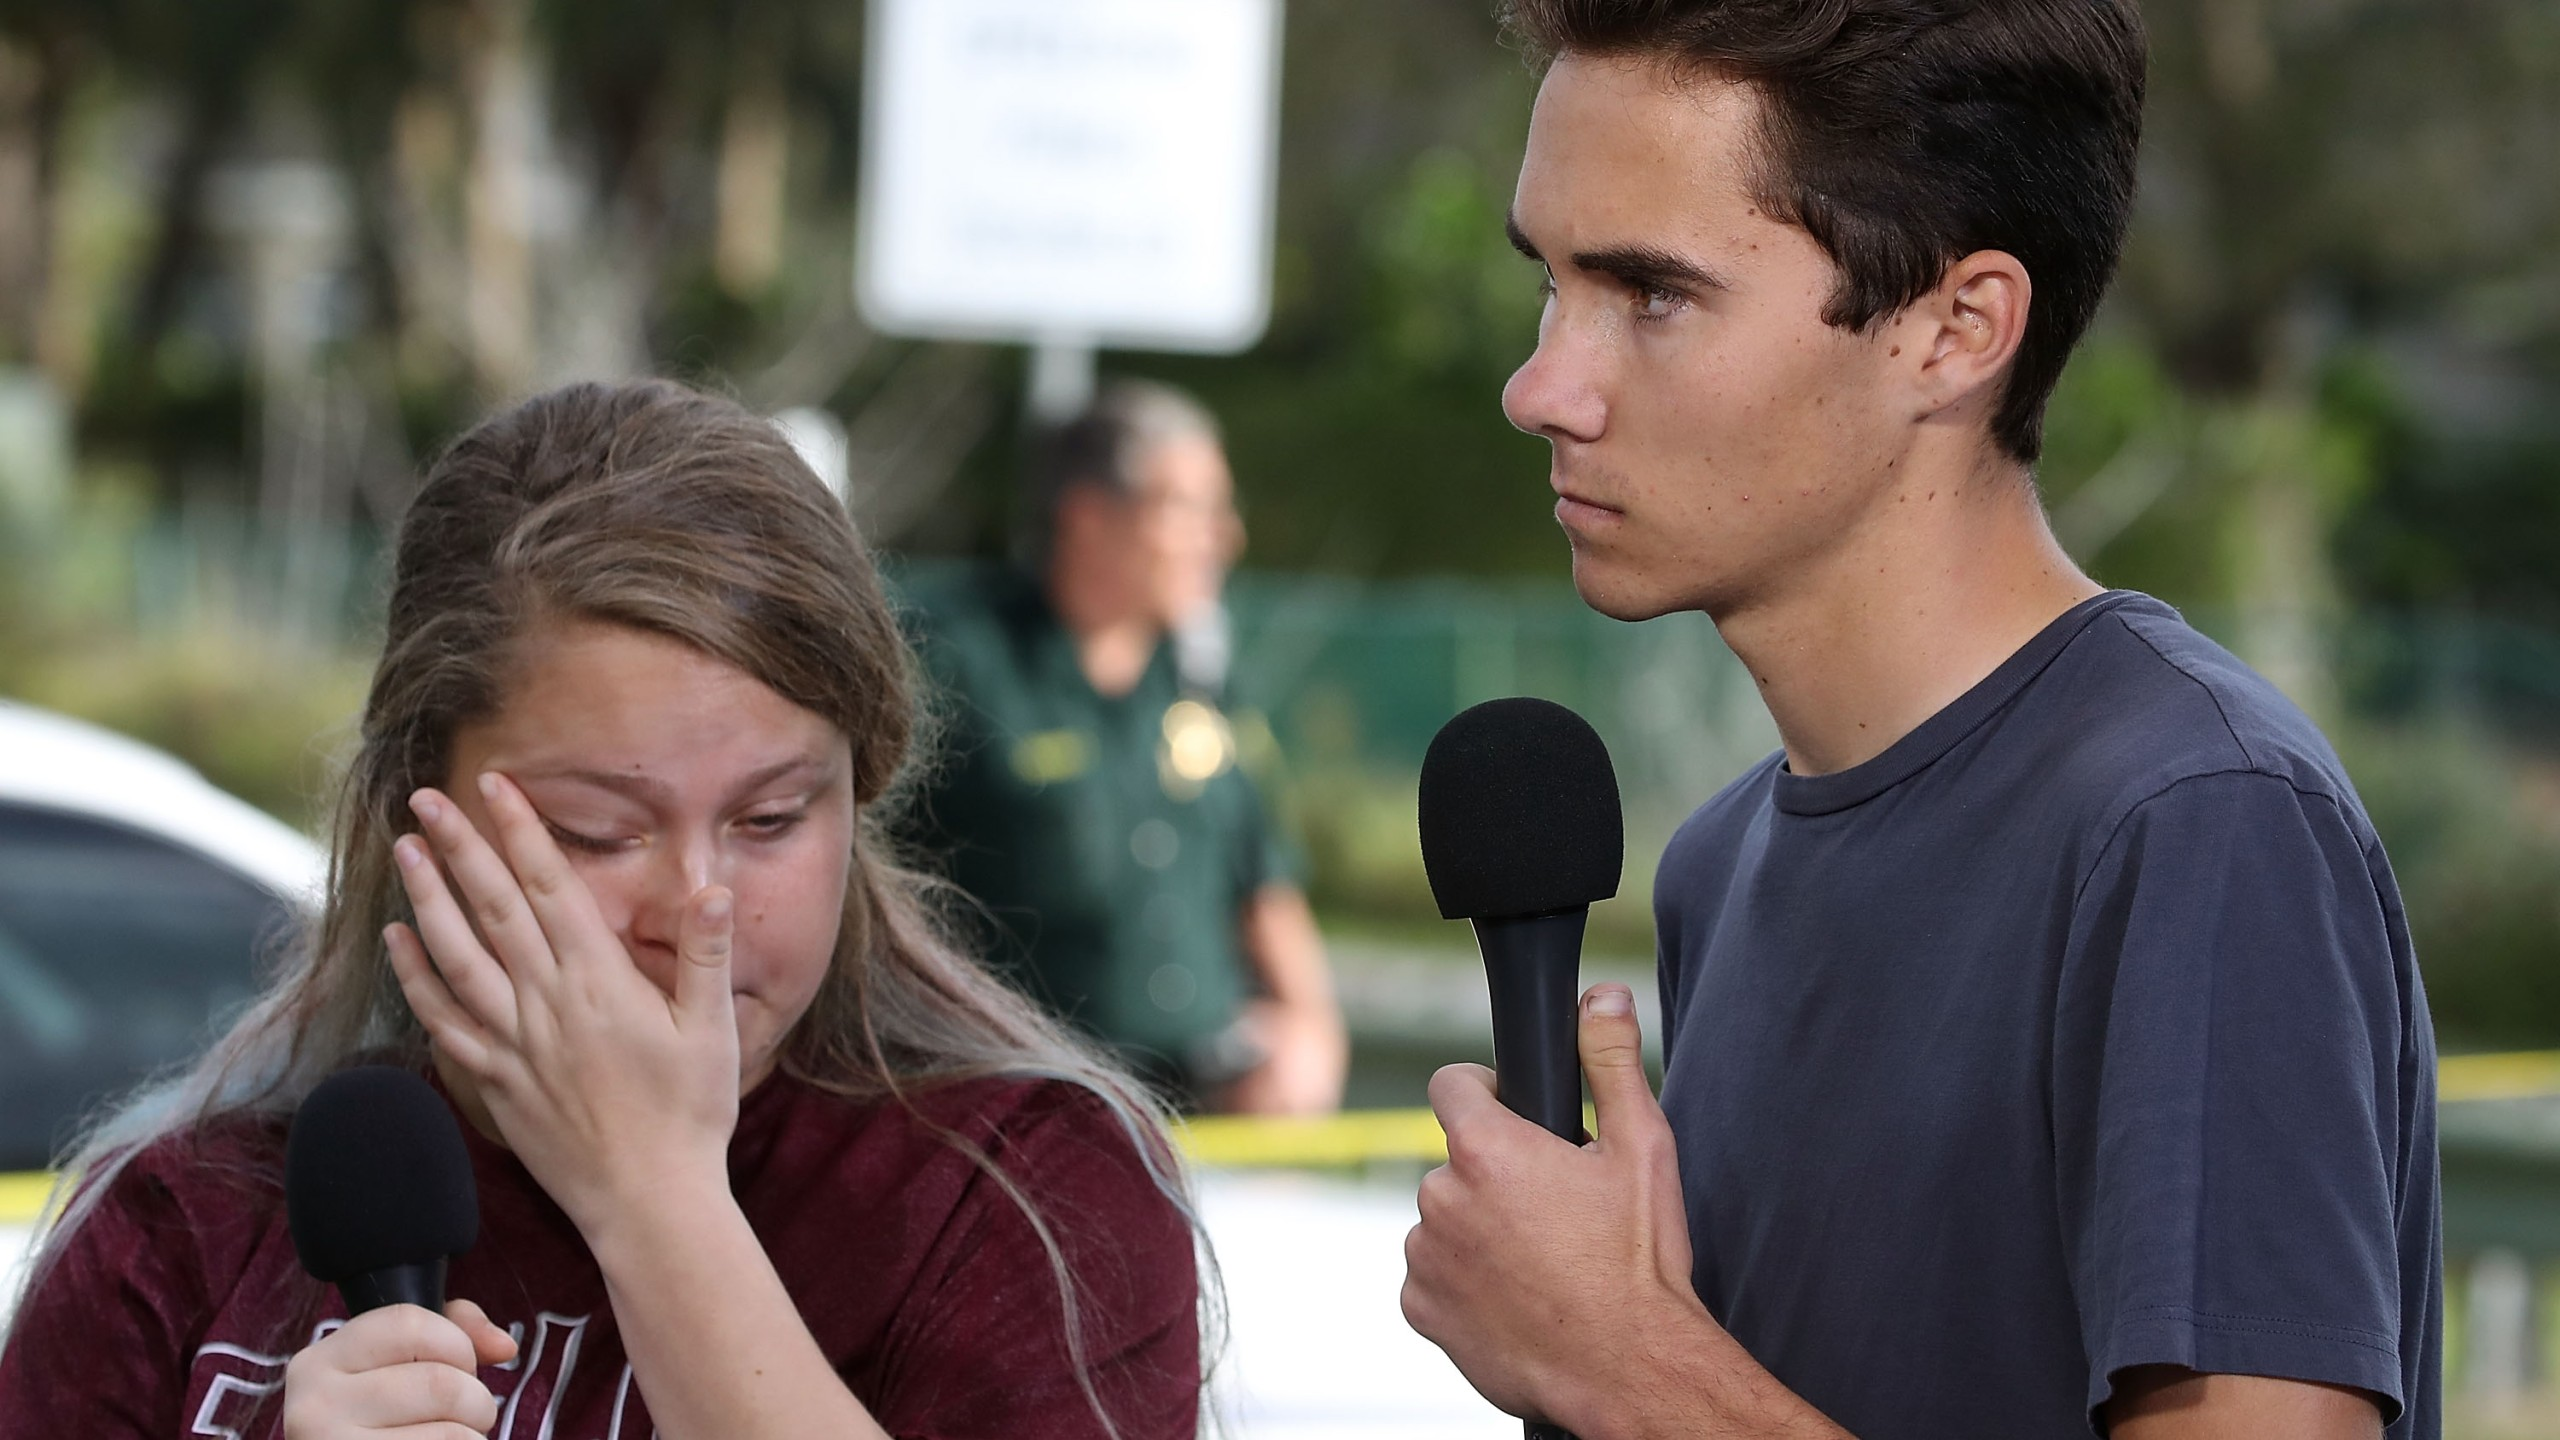 Students Kelsey Friend (L) and David Hogg recount their stories about the mass shooting at the Marjory Stoneman Douglas High School, where 17 people were killed on February 15, 2018 in Parkland, Florida. (Credit: Mark Wilson/Getty Images)